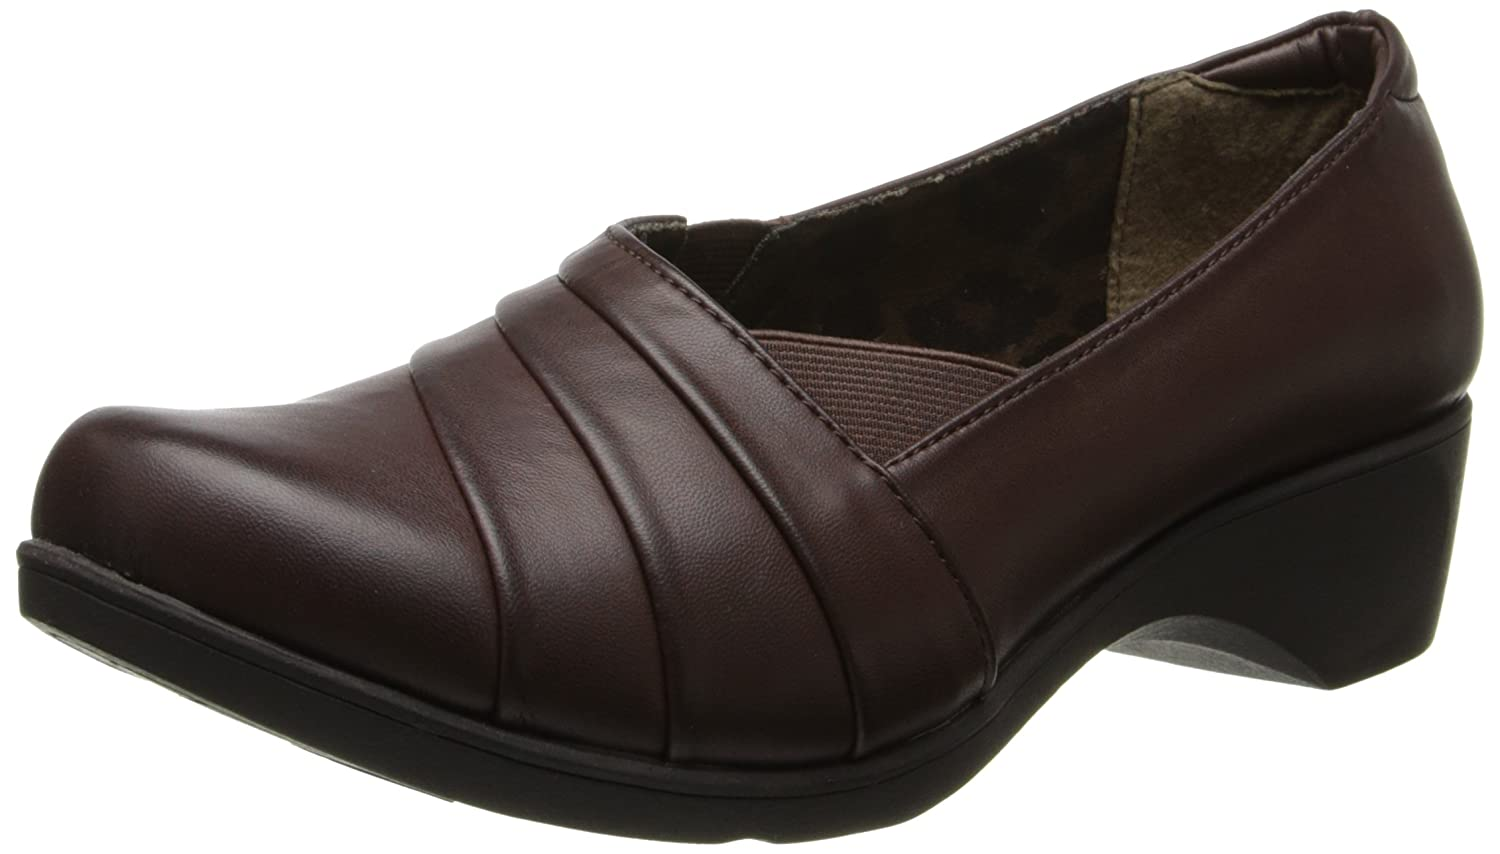 Soft Style by Hush Puppies Women's Kambra Slip-On Loafer B00HS1K9QE 7.5 B(M) US|Dark Brown Burnished